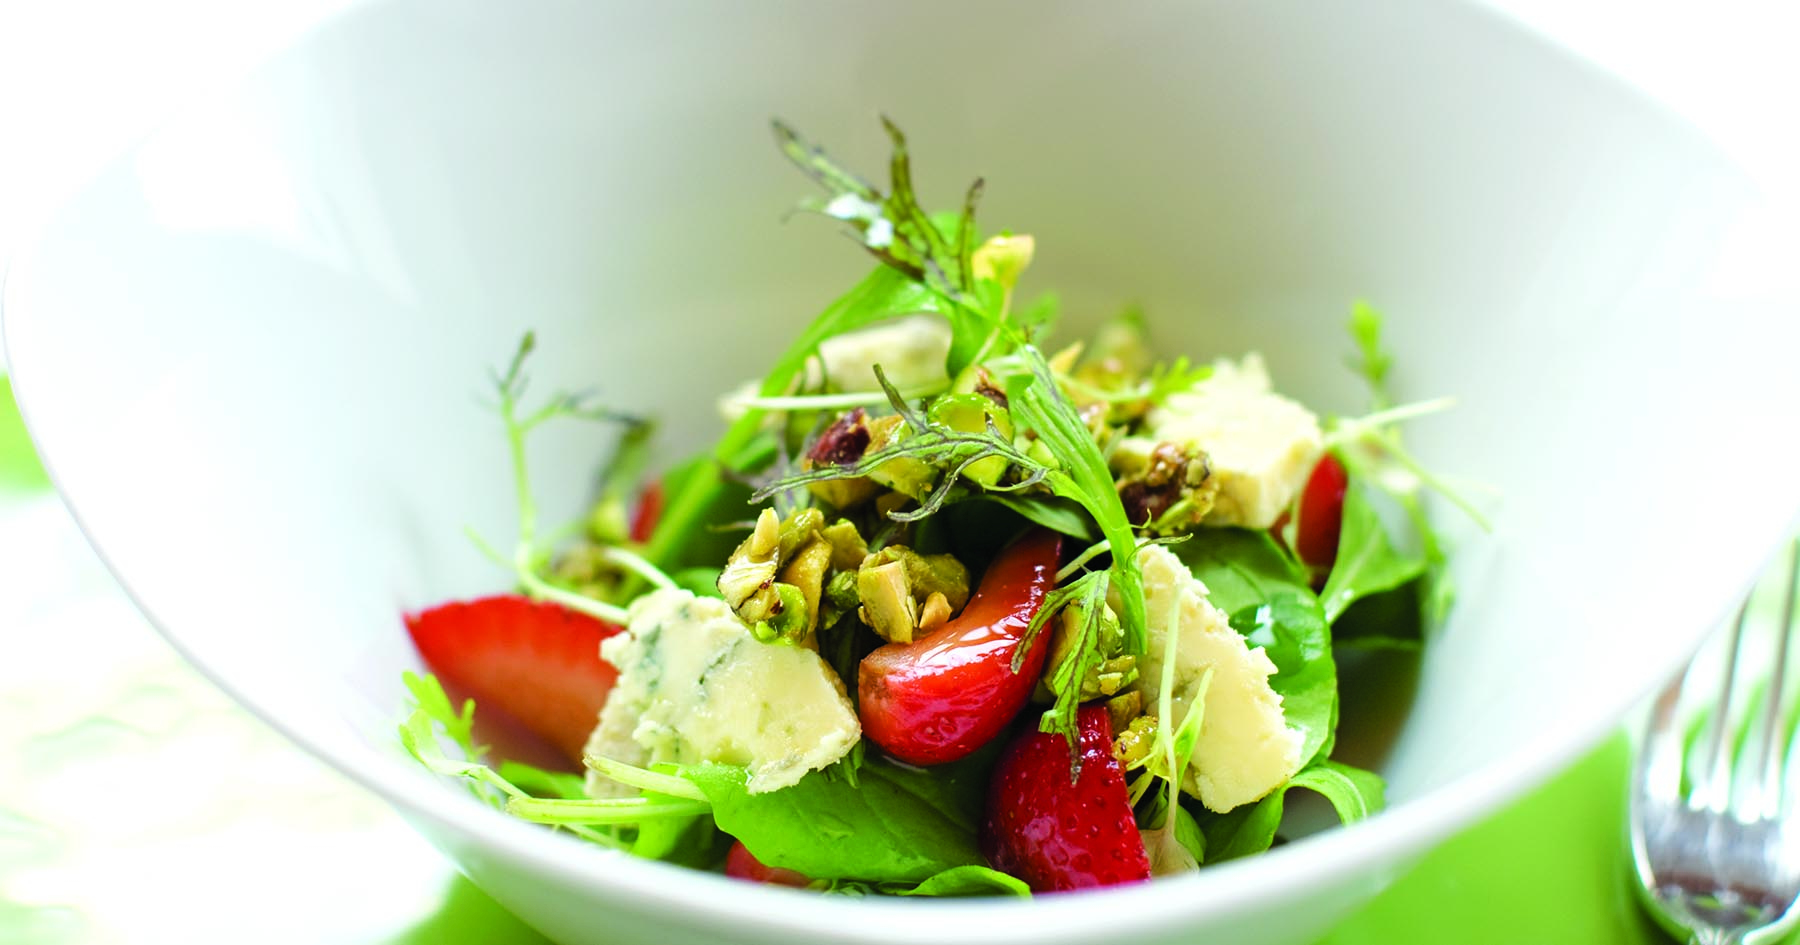 Arugula Salad With Pickled Strawberries, Candied Pistachios and Crumbled Blue Cheese